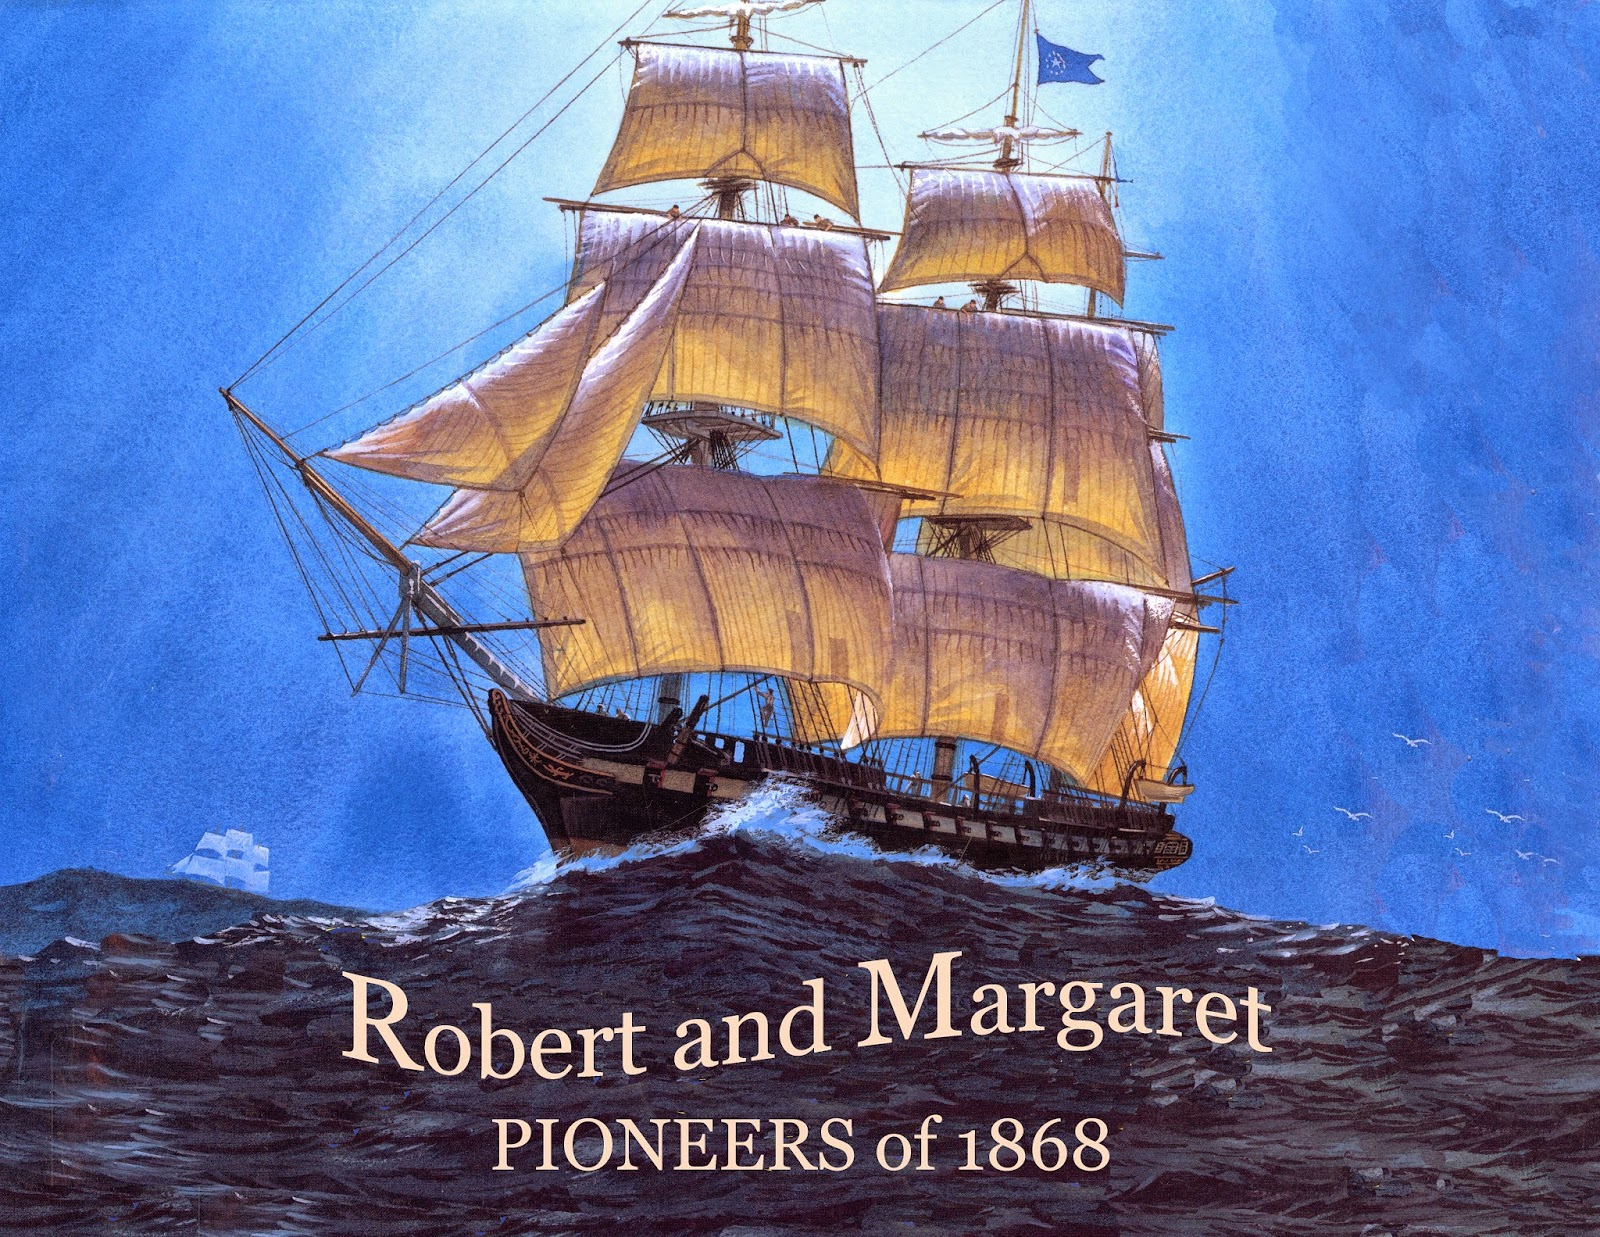 http://gatheringgardiners.blogspot.com/2015/03/robert-and-margaret-pioneers-of-1868.html